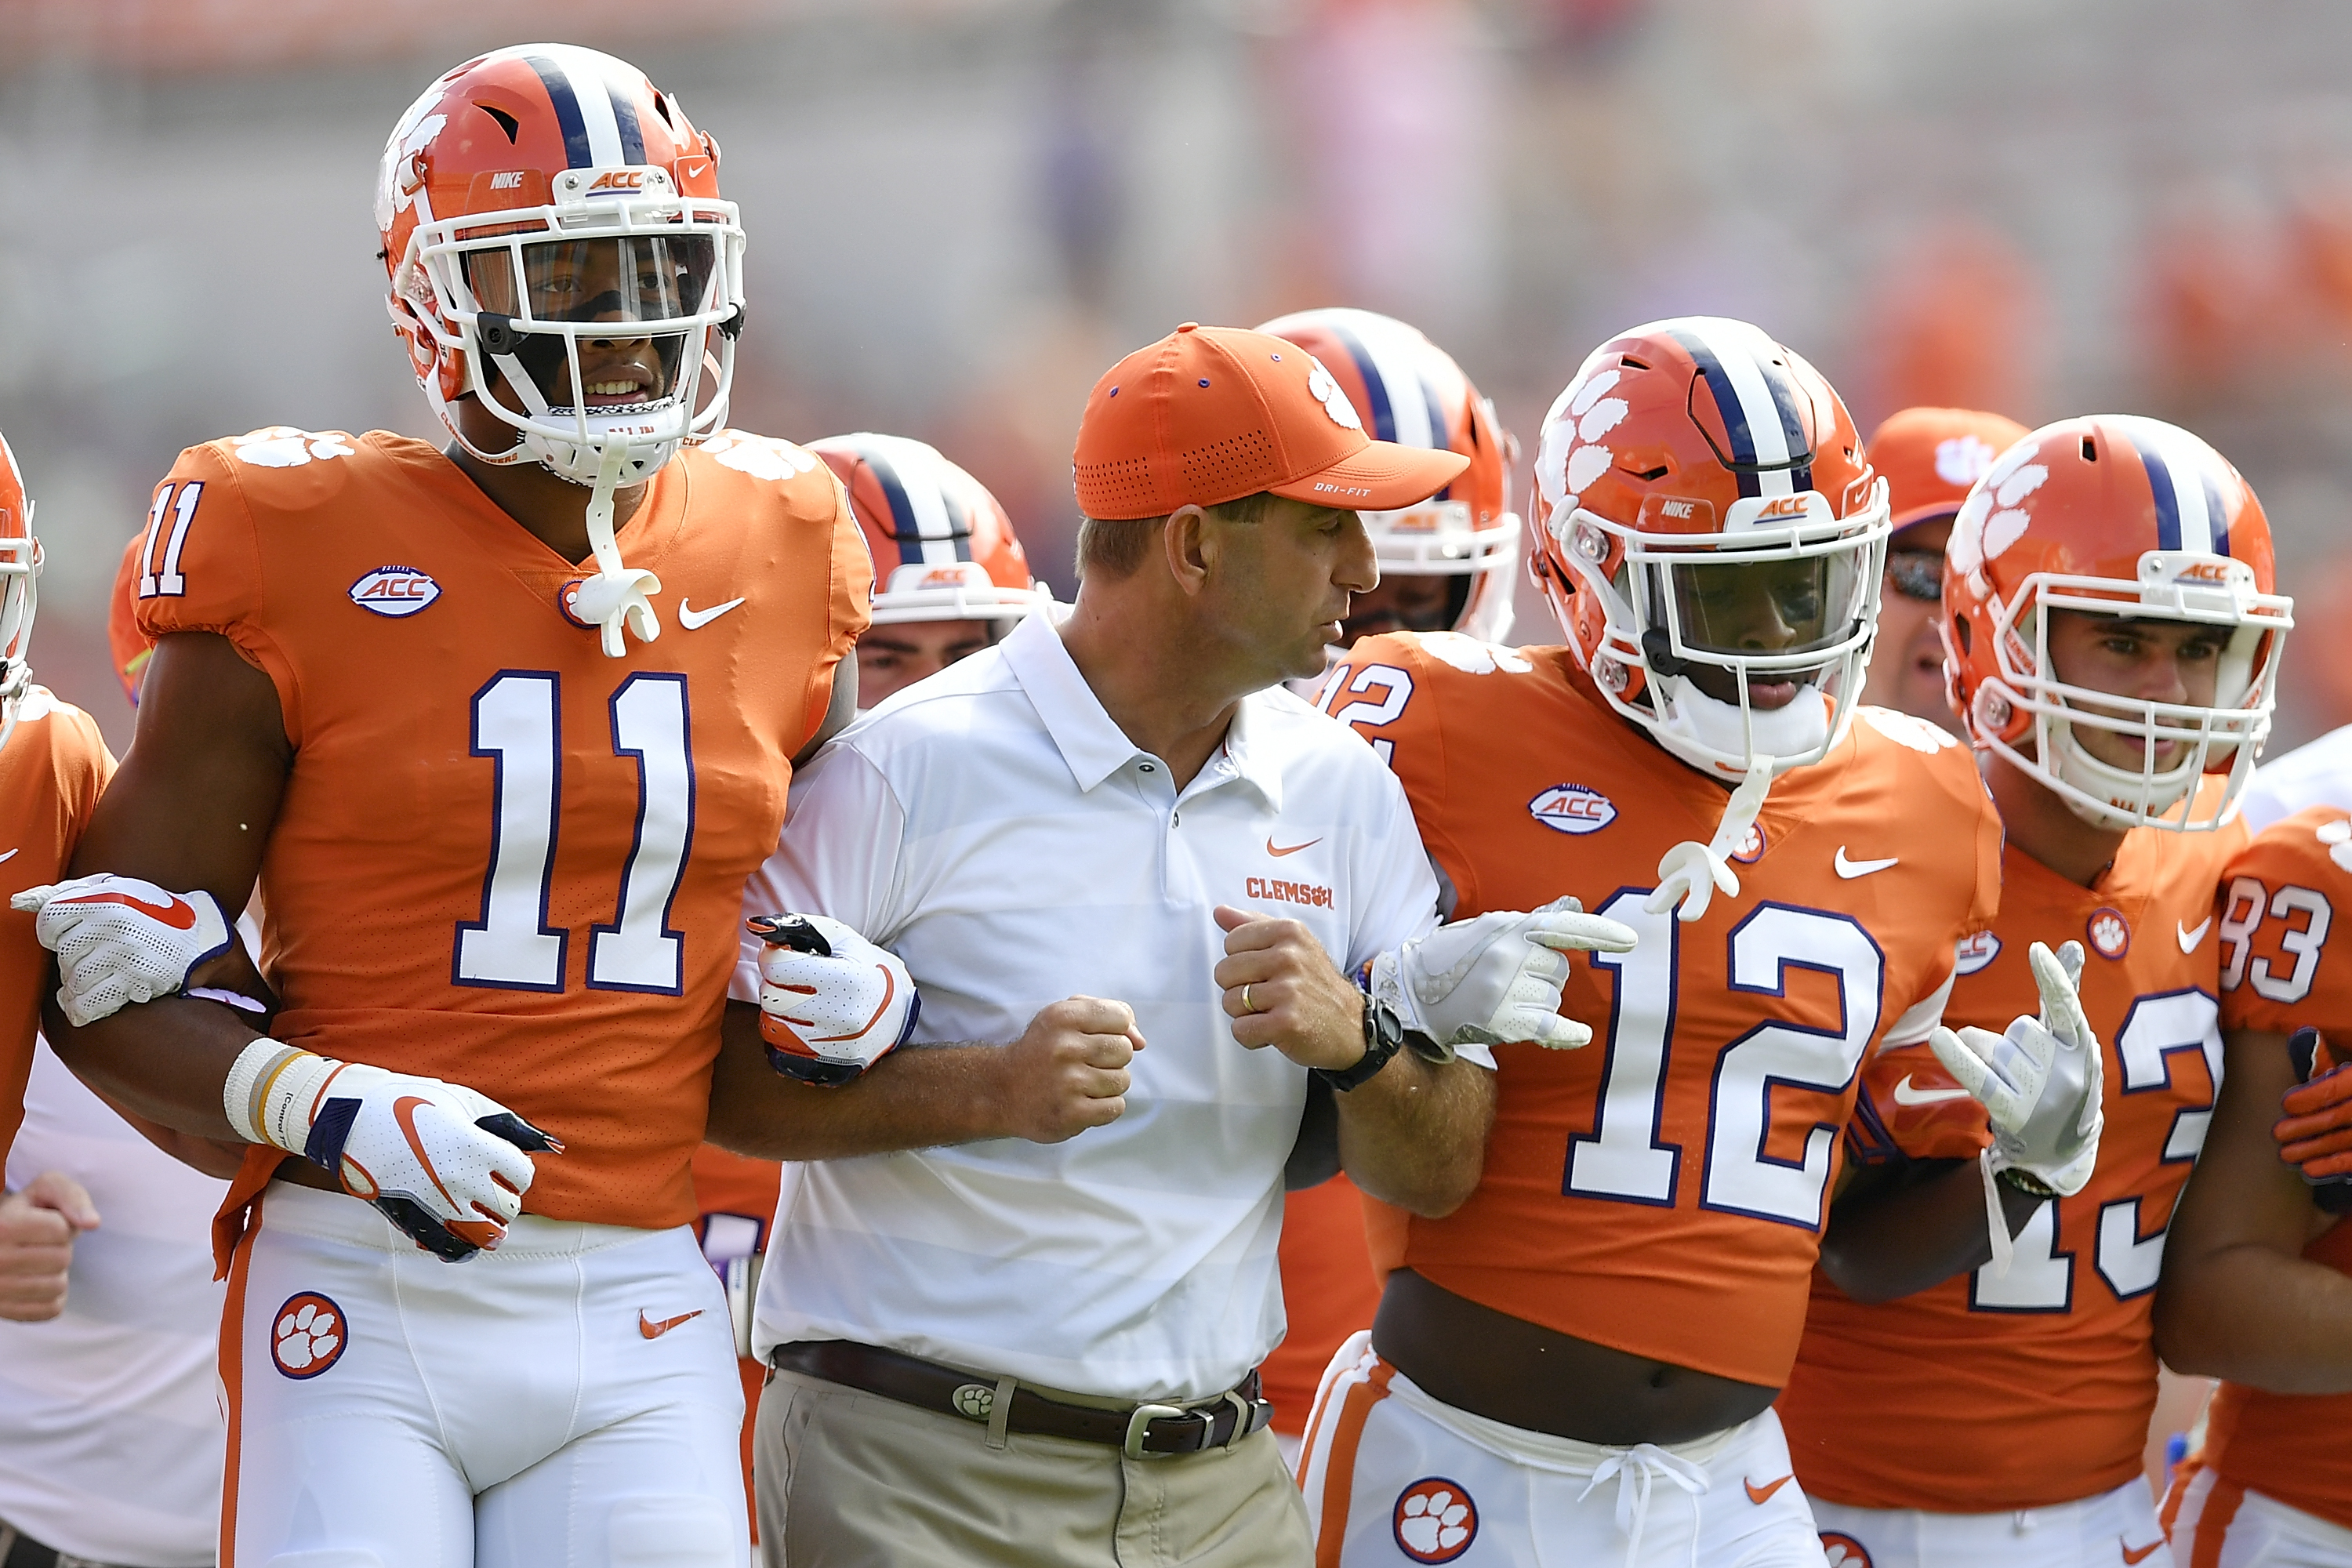 Clemson lets almost the whole roster play, destroys good teams anyway